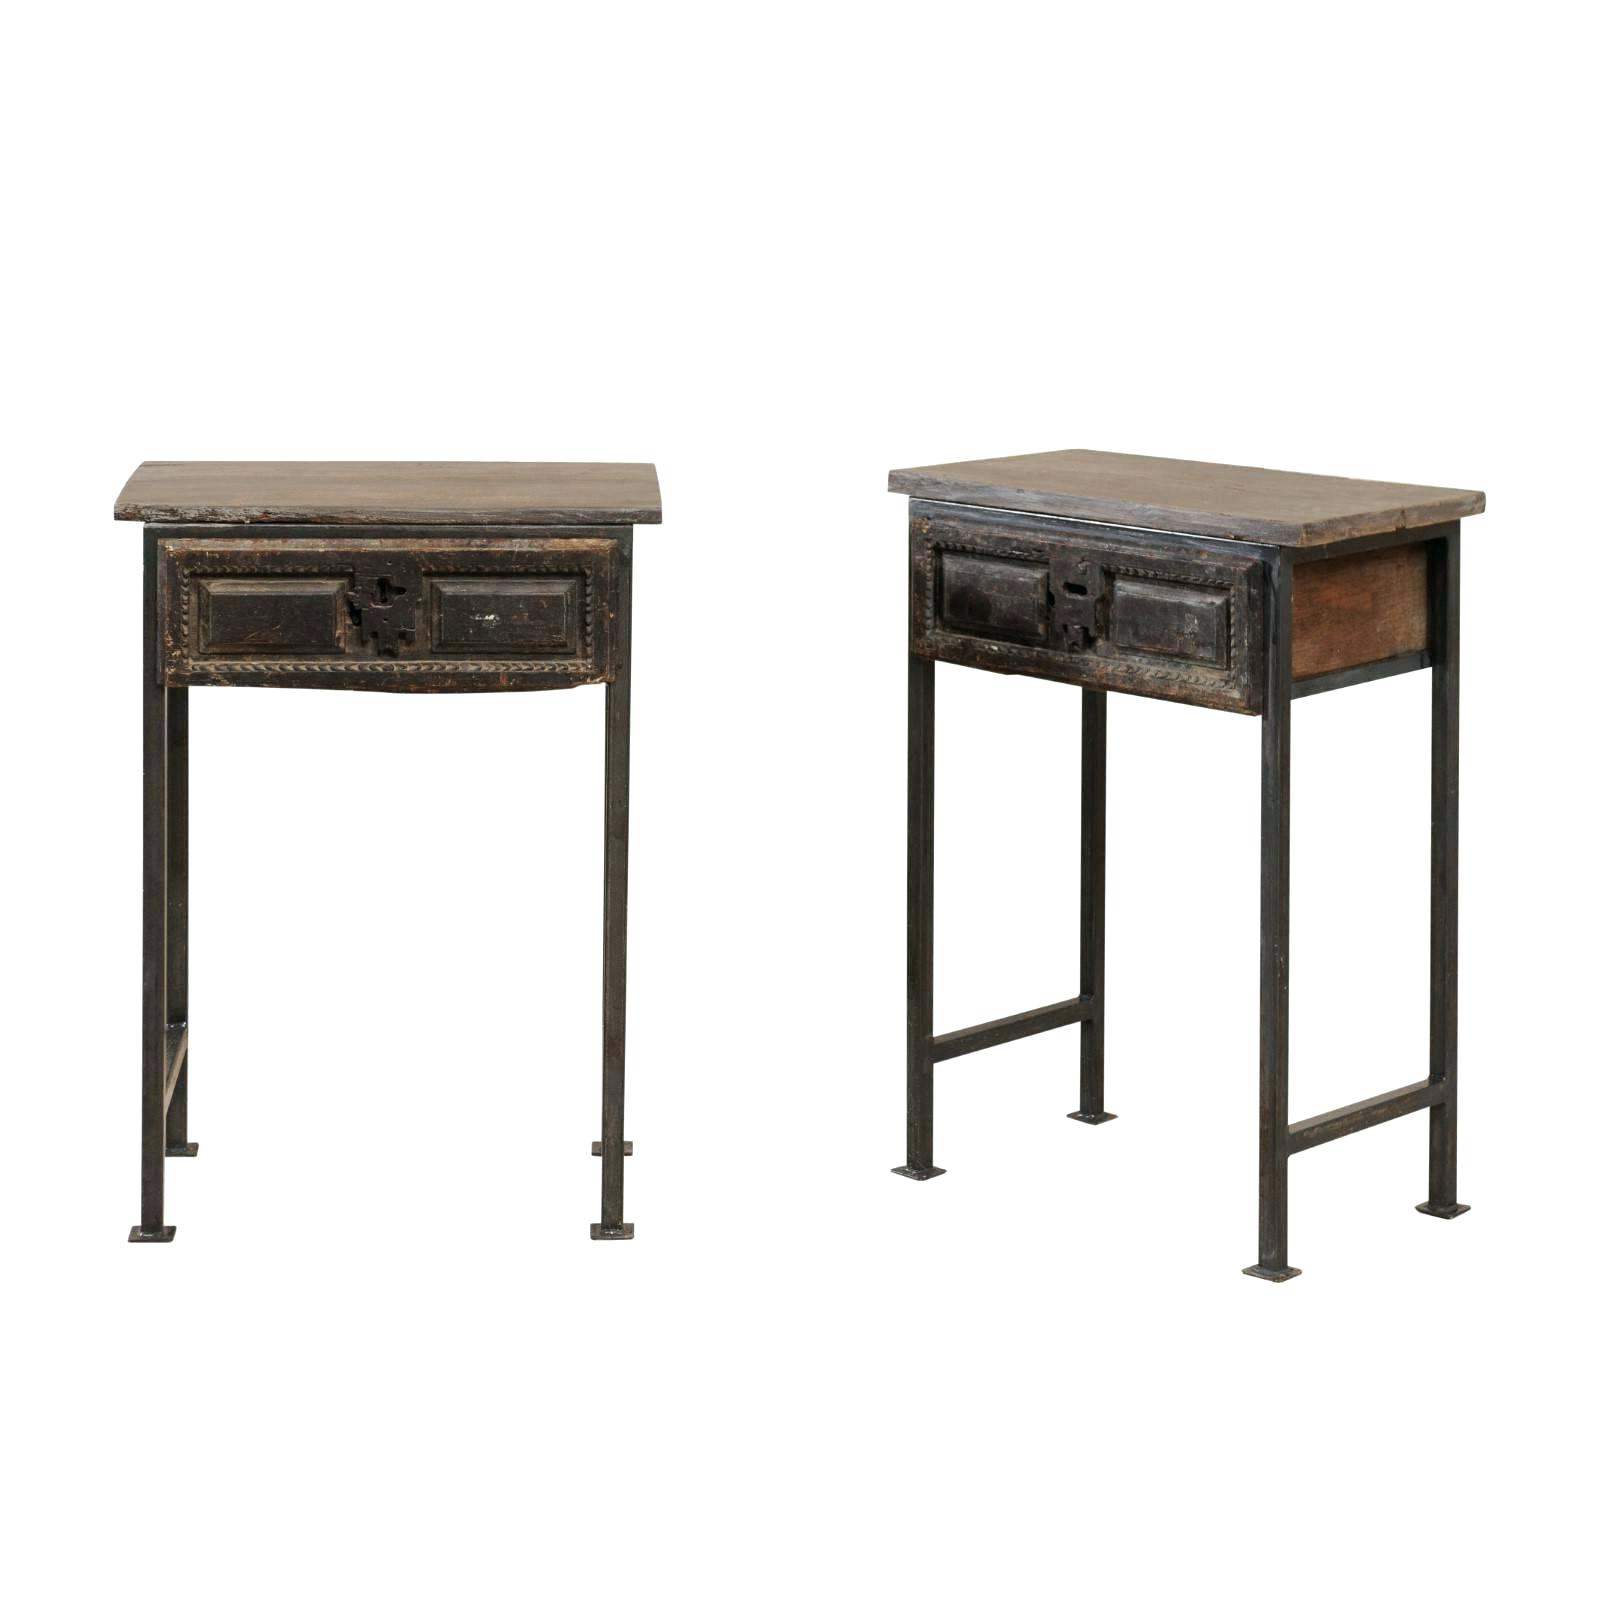 2020 Burnham Reclaimed Wood And Iron Round Coffee Tables Regarding Side Tables ~ Iron And Wood Side Table Pair Of Century (View 16 of 20)